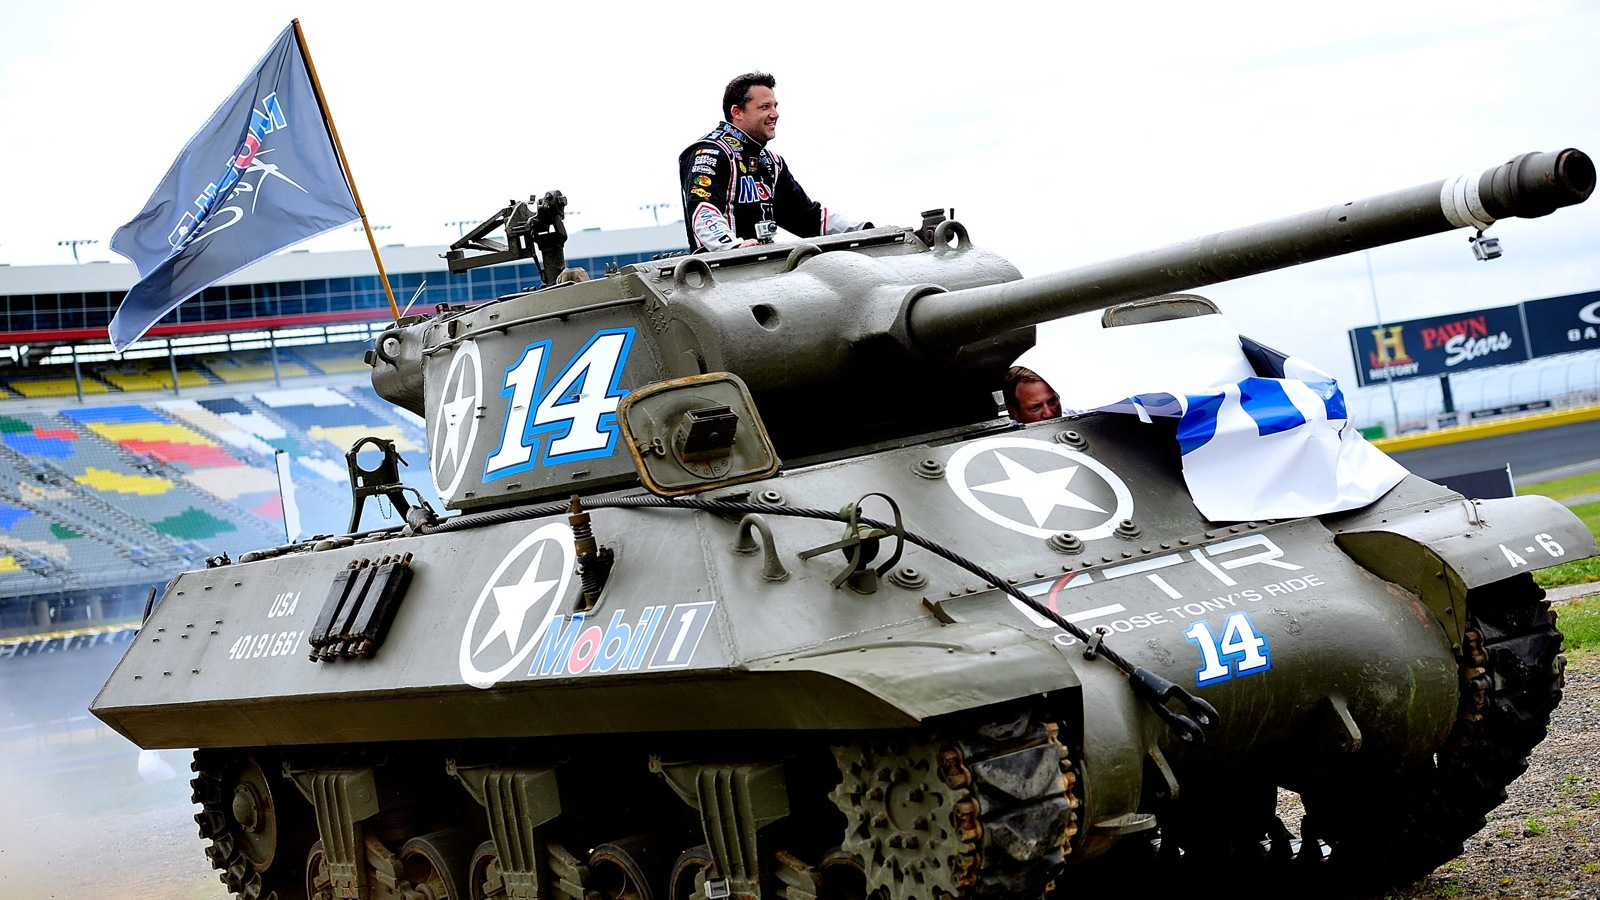 Tony Stewart swaps his ride for the day - image credit Grant Halverson / Getty Images for Mobil 1